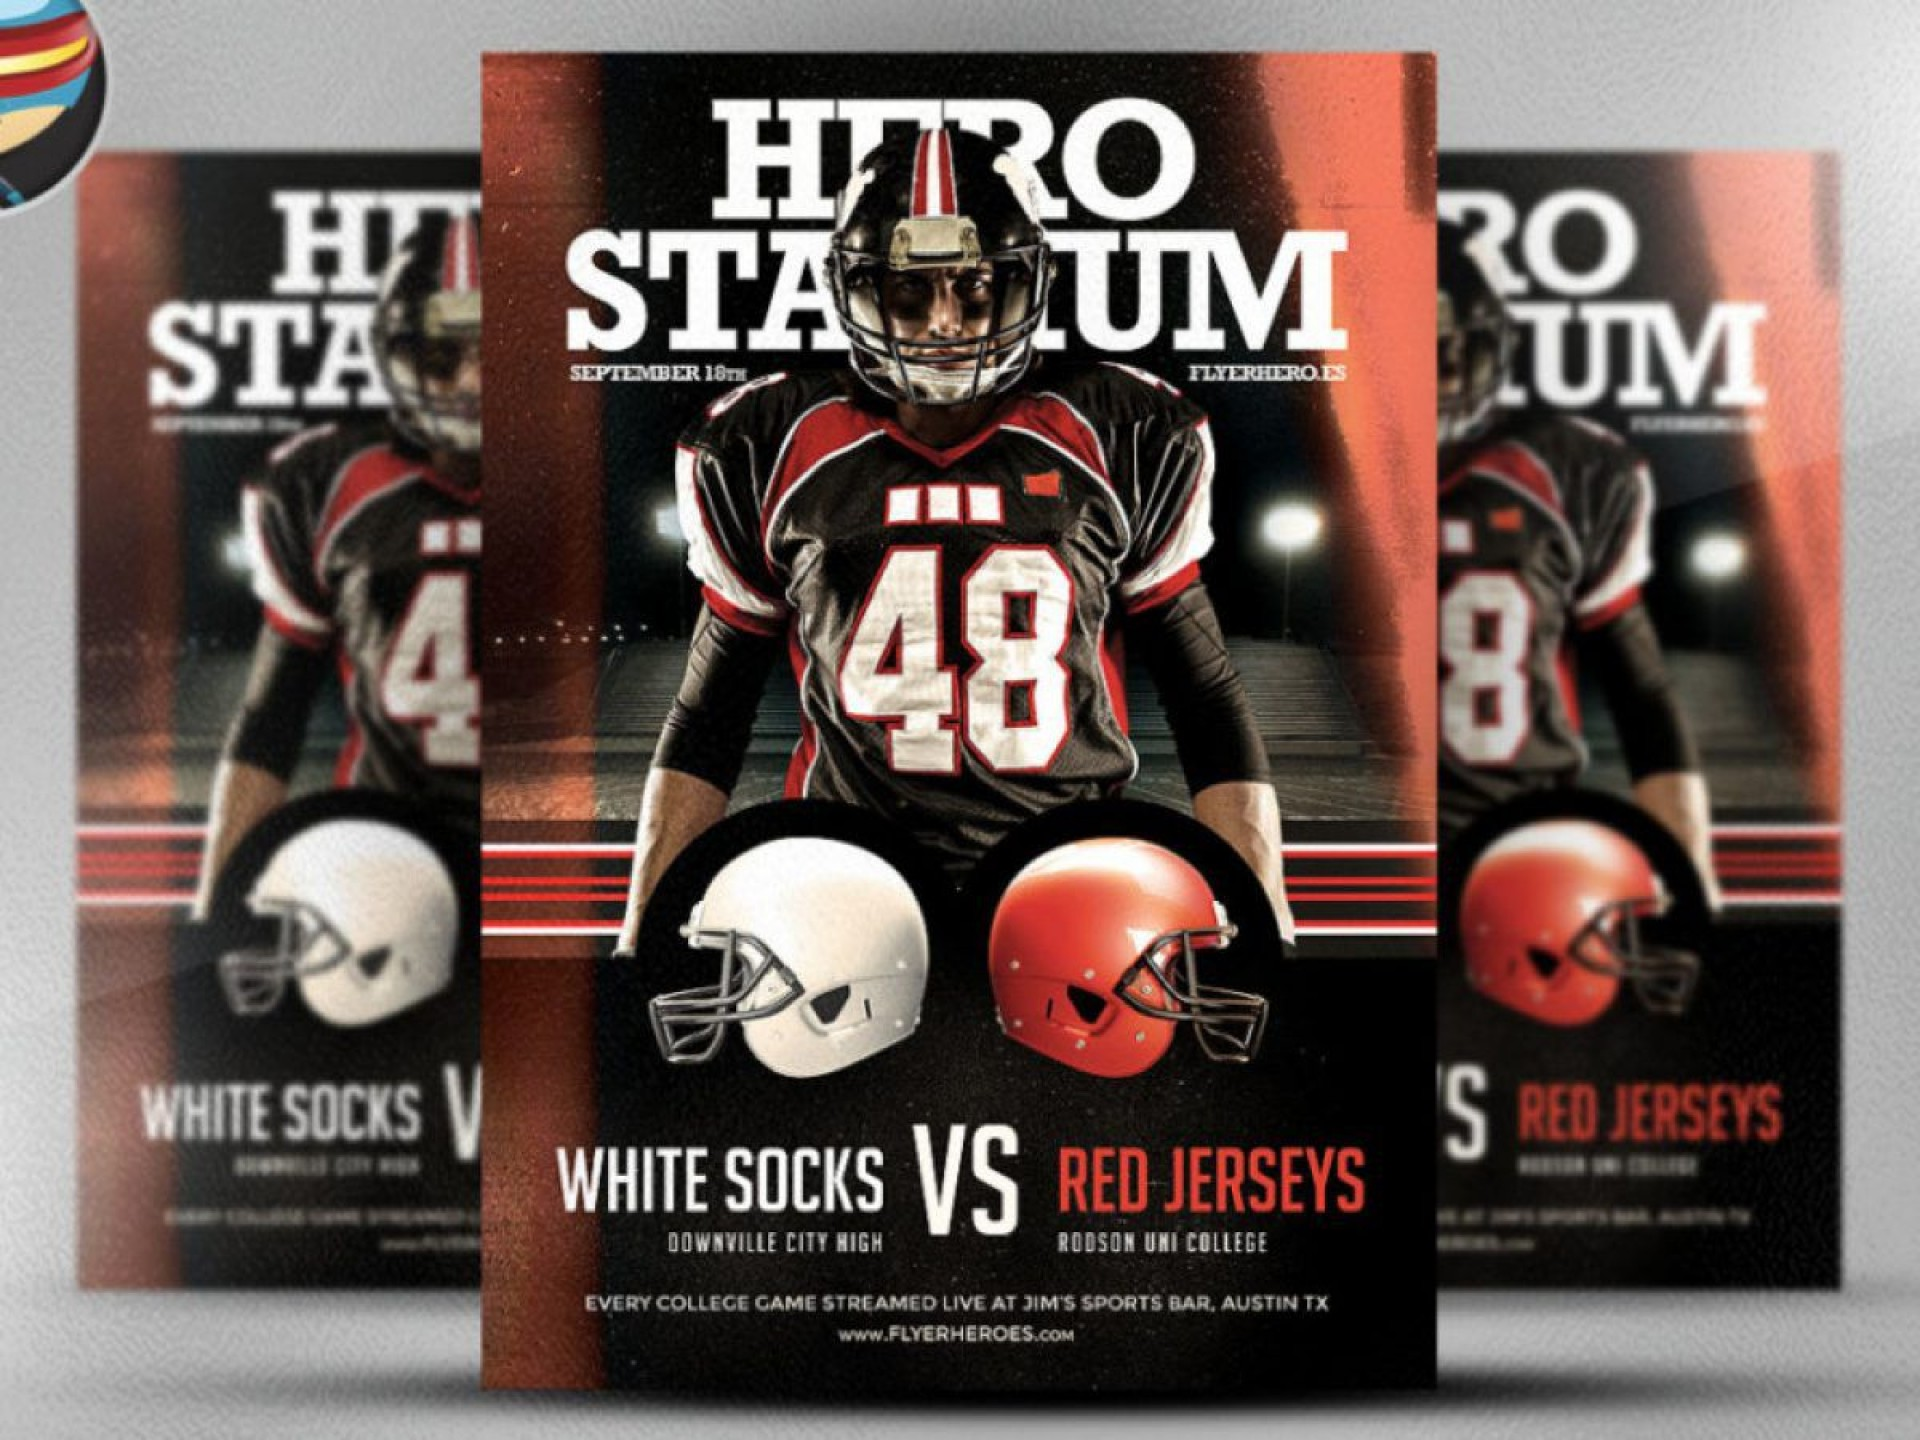 000 Fantastic Football Flyer Template Free High Resolution  Download Flag Party1920